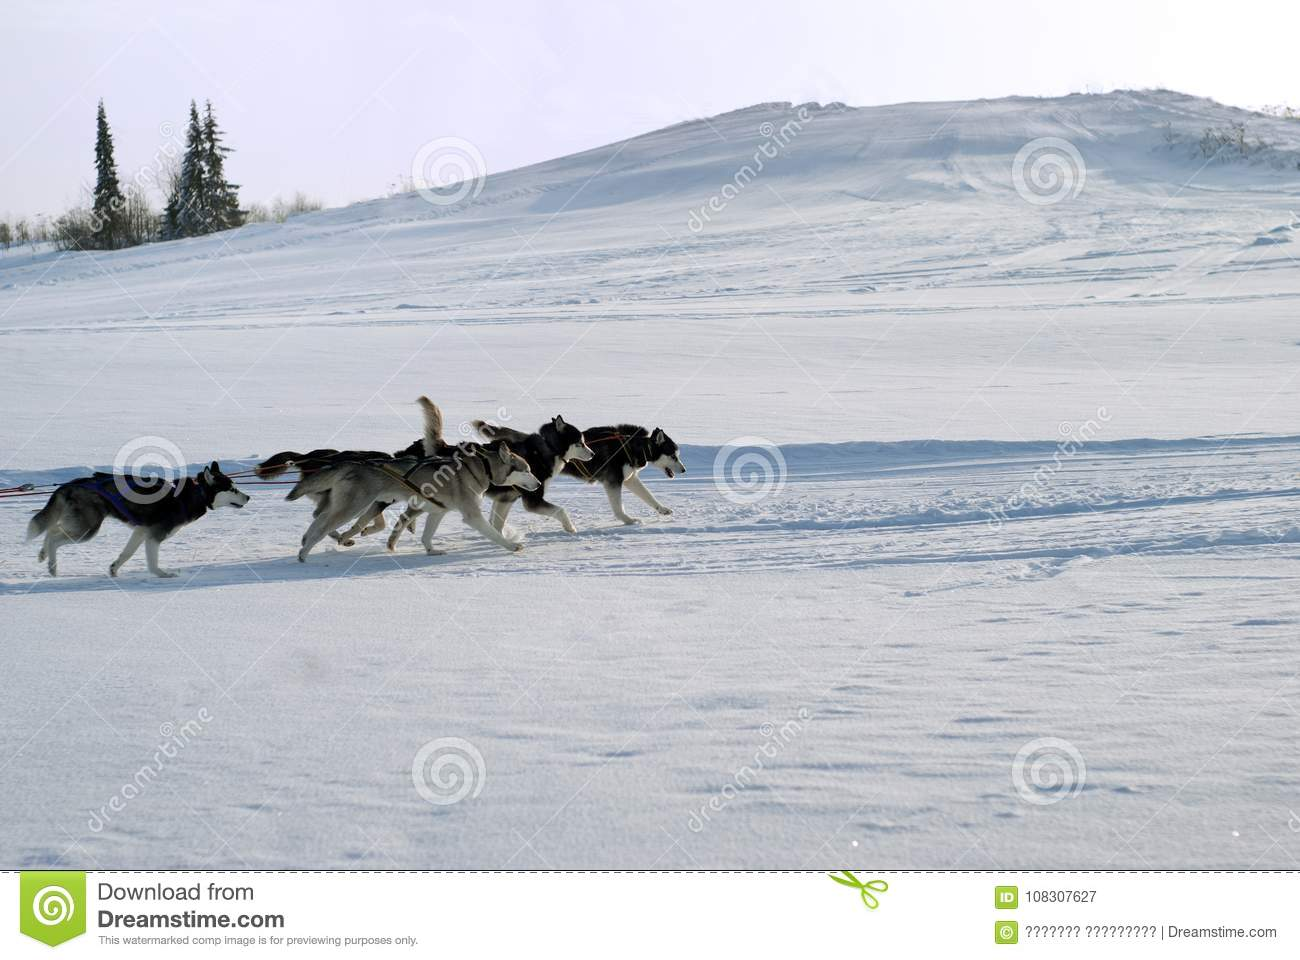 five siberian huskies pull sleds themselves sleds behind the scenes on the  road against the background of a hilly winter landscape